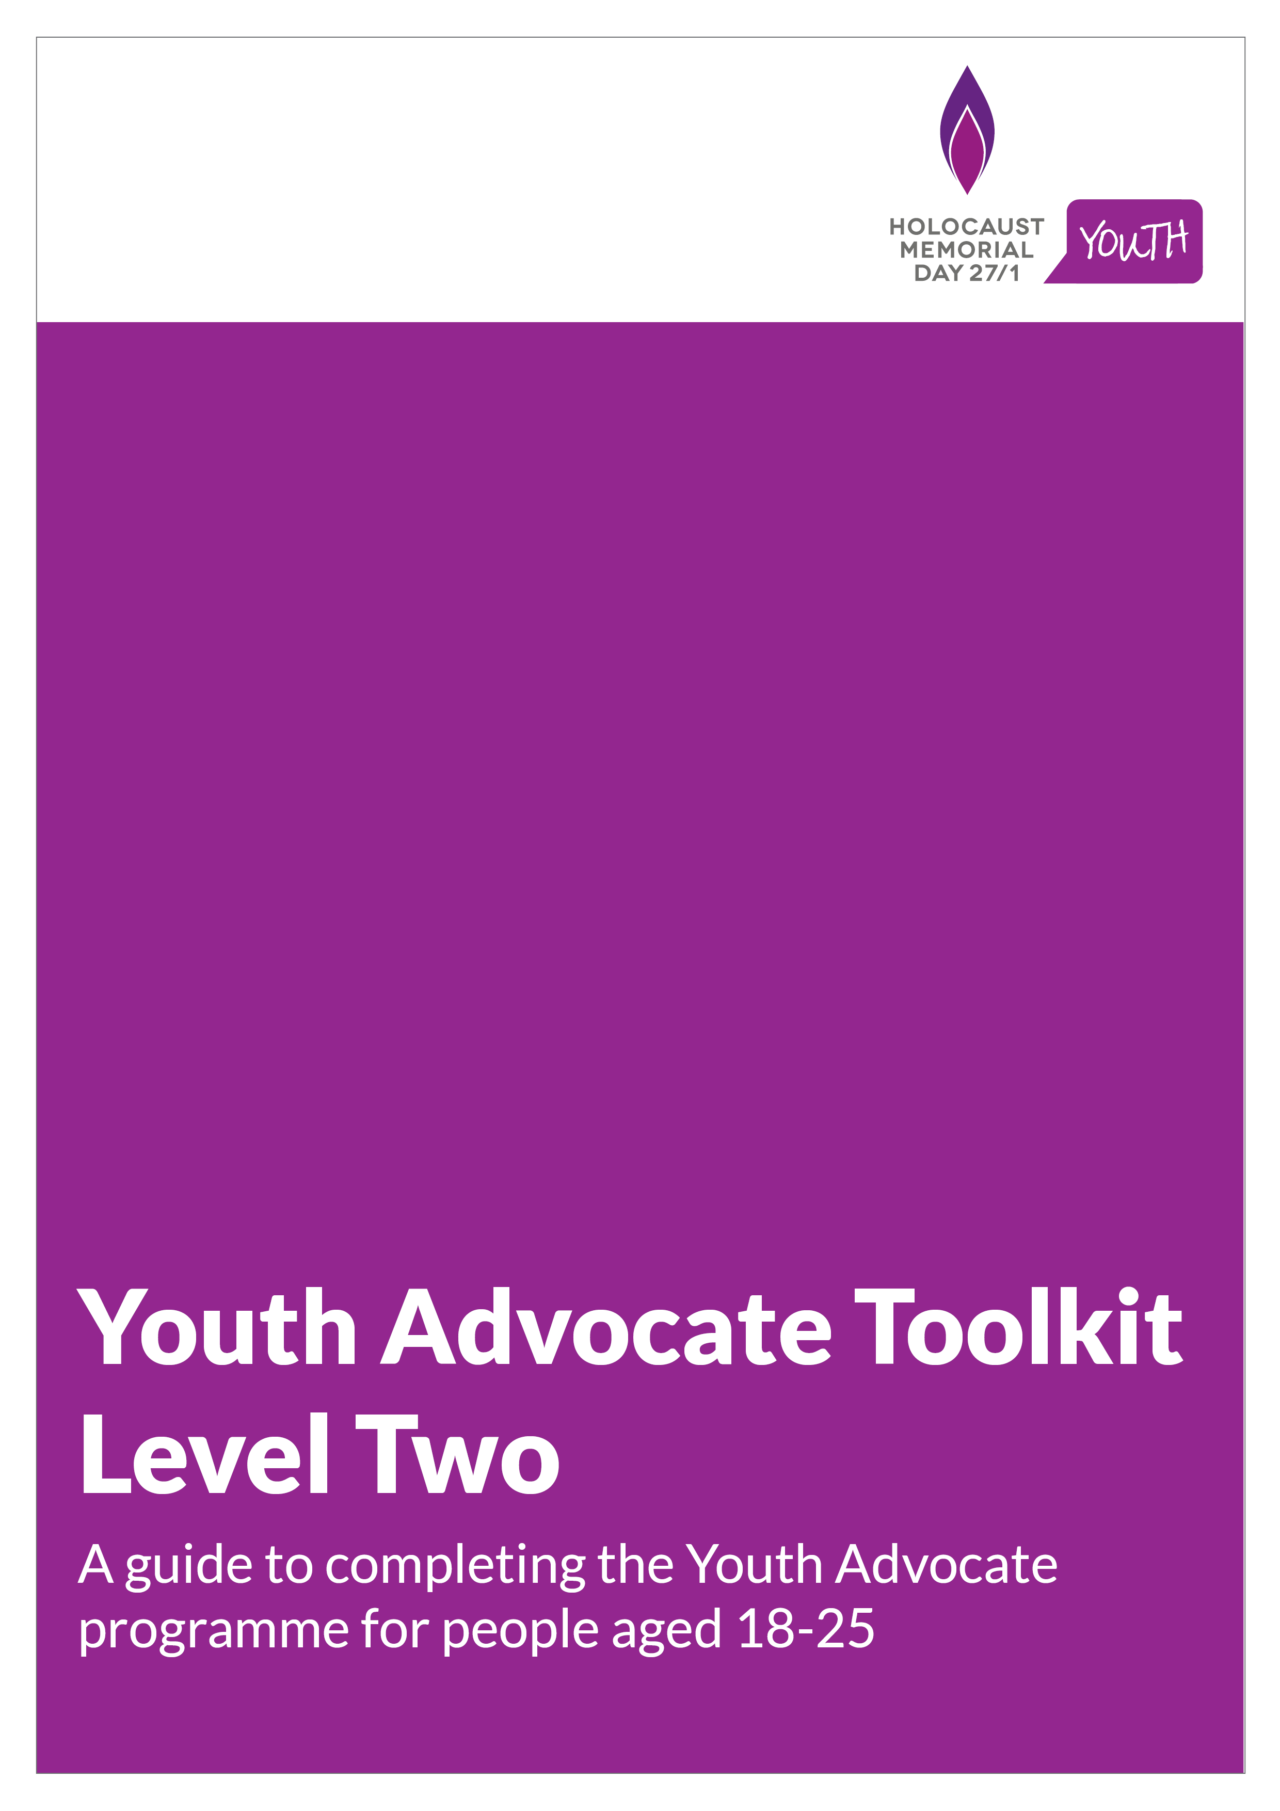 Youth Advocate Toolkit - Level Two